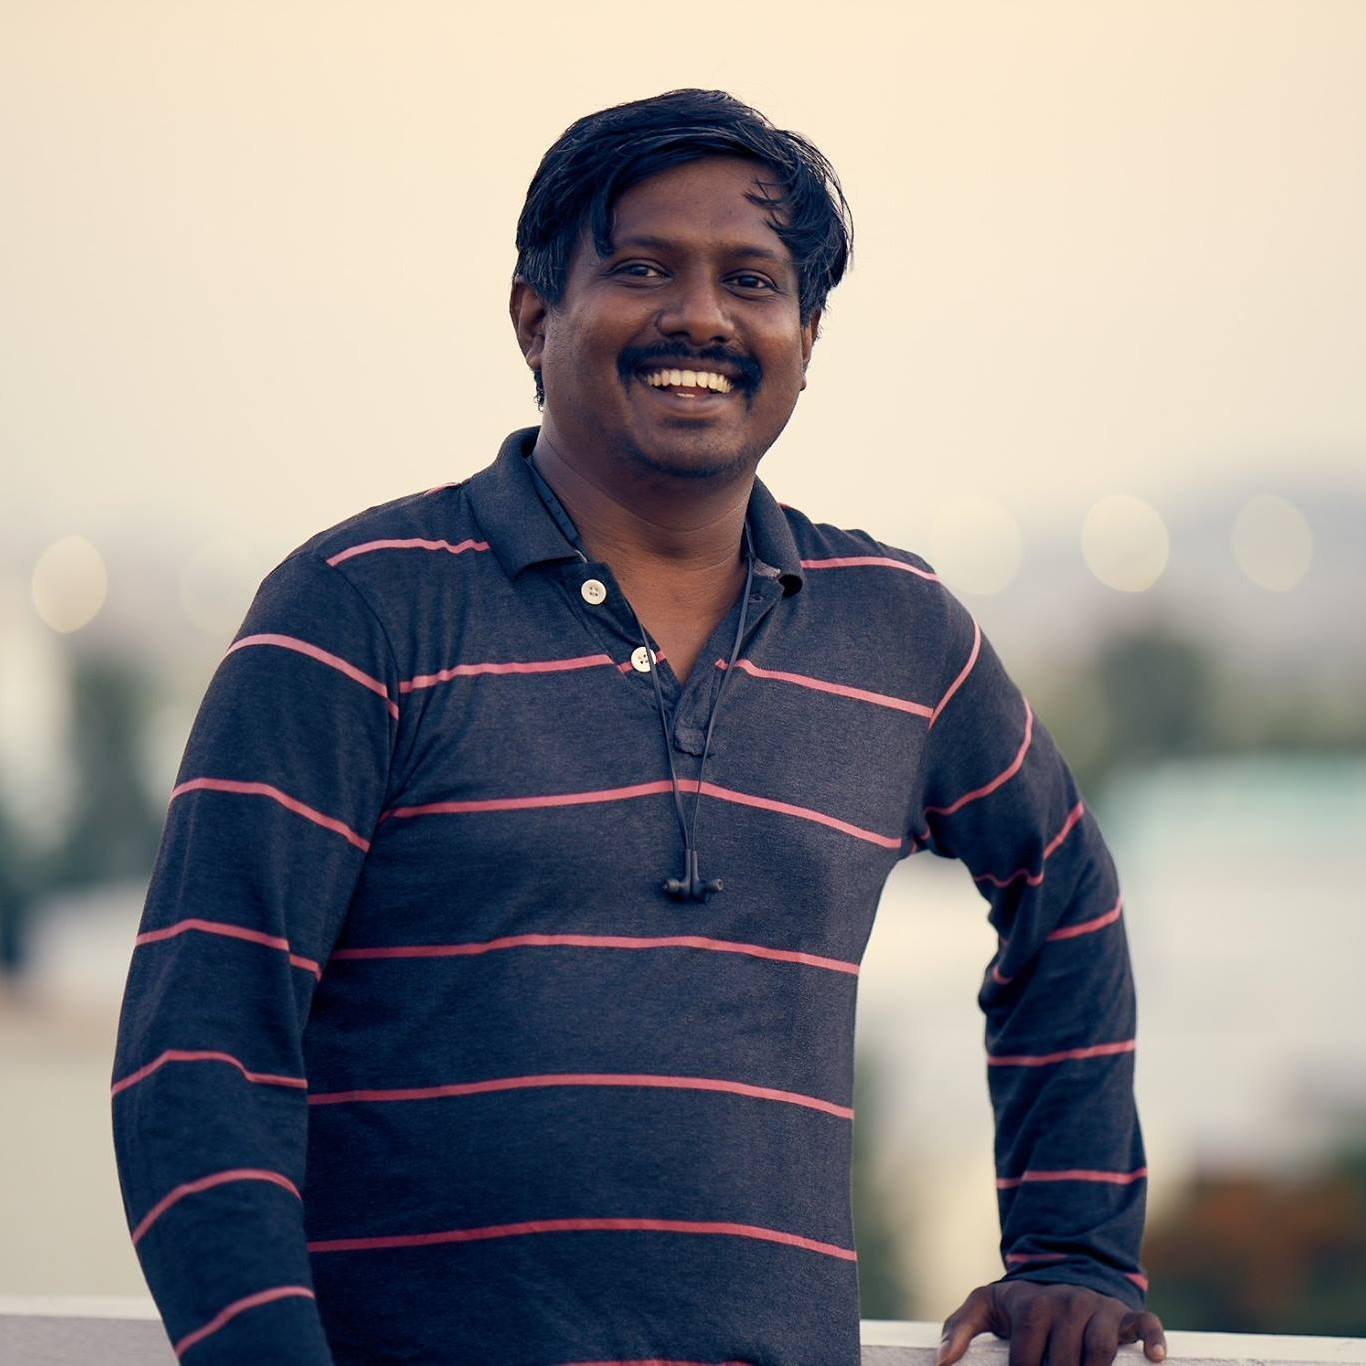 Karthik Rajagopal  a commercial photographer will facilitate the workshop.